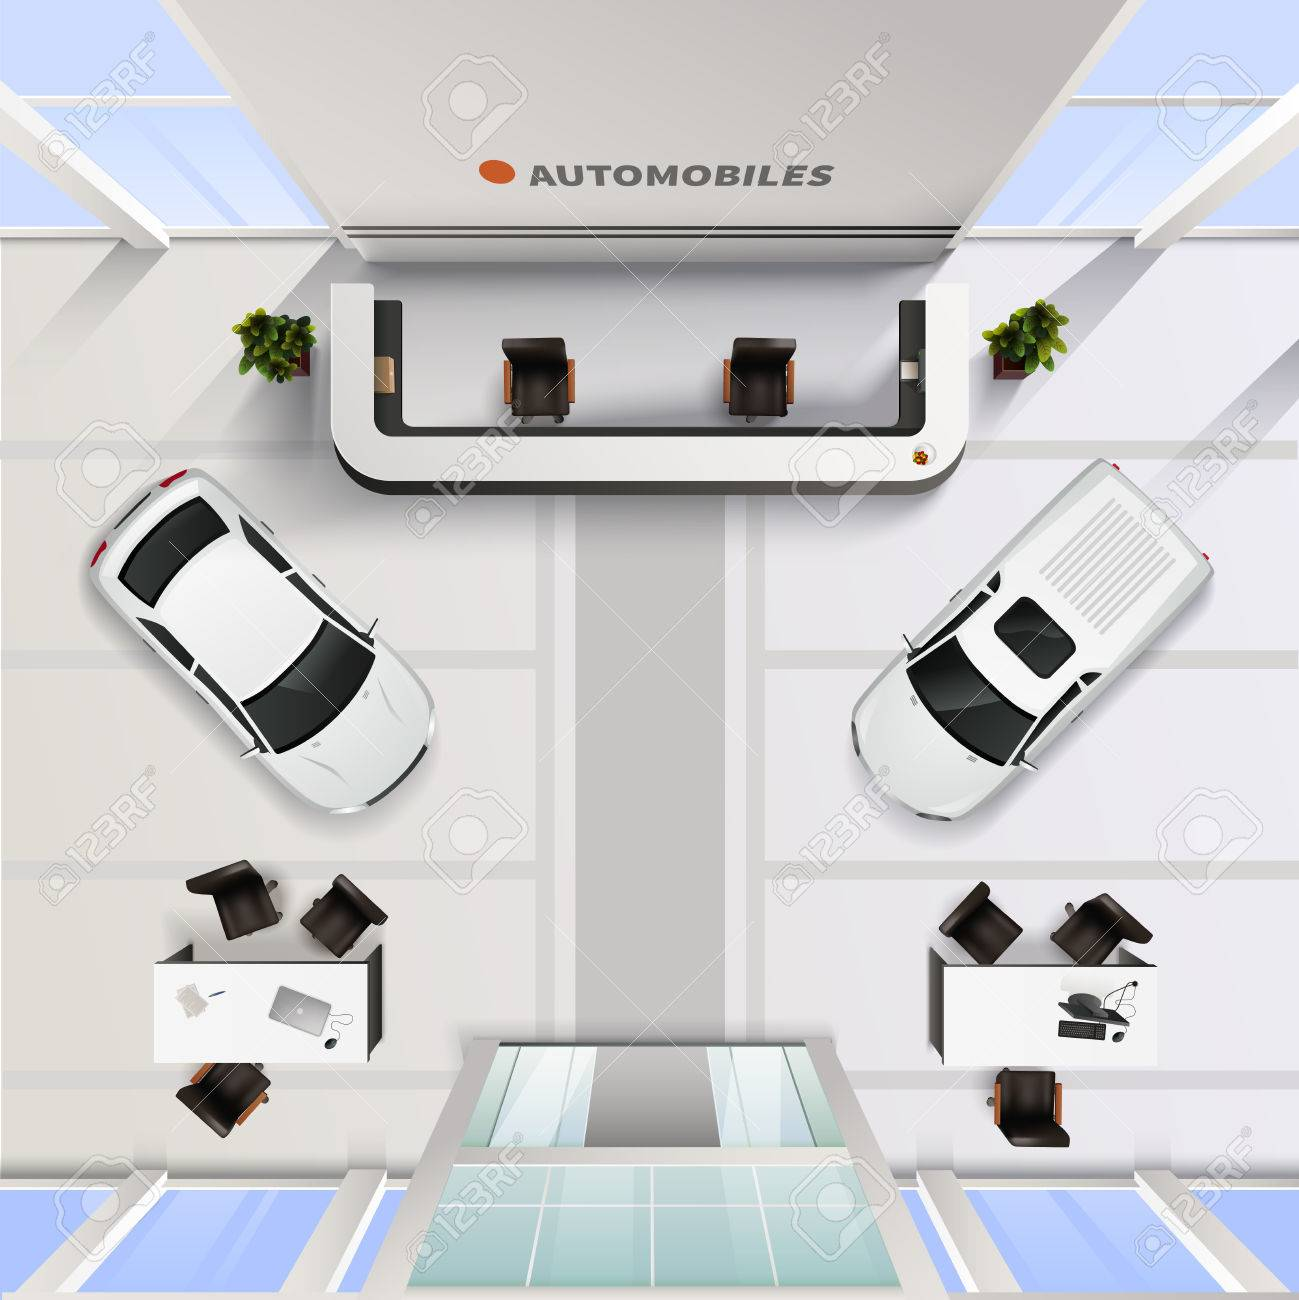 Isometric Top View Office Interior Of Automobile Salon With Cars